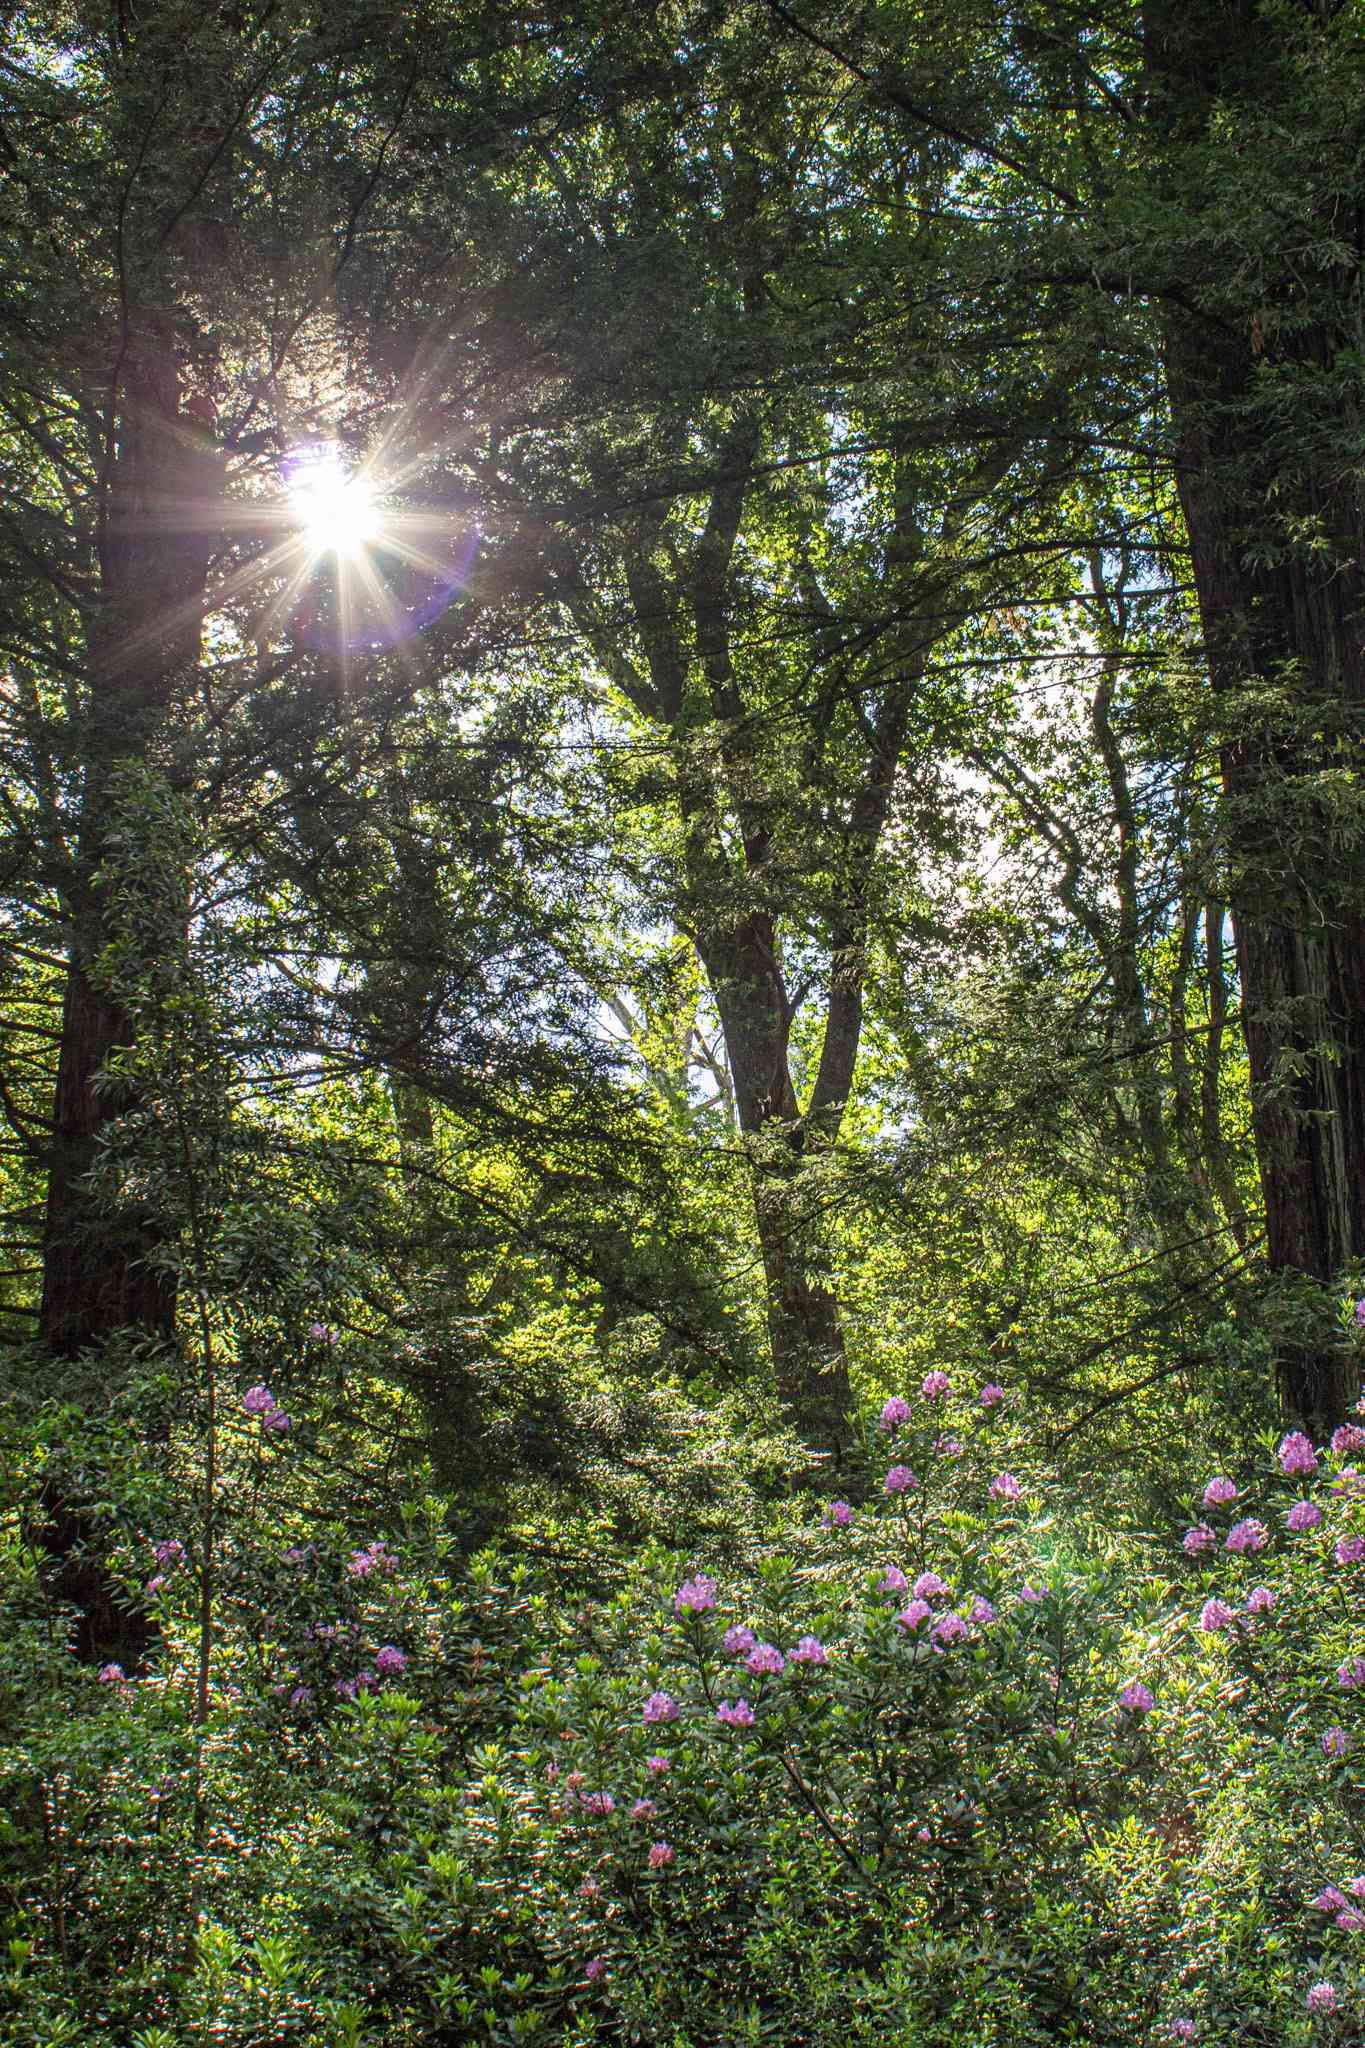 a beautiful forest with purple flowers in the foreground and a sun bursting through the trees - south africa vacation